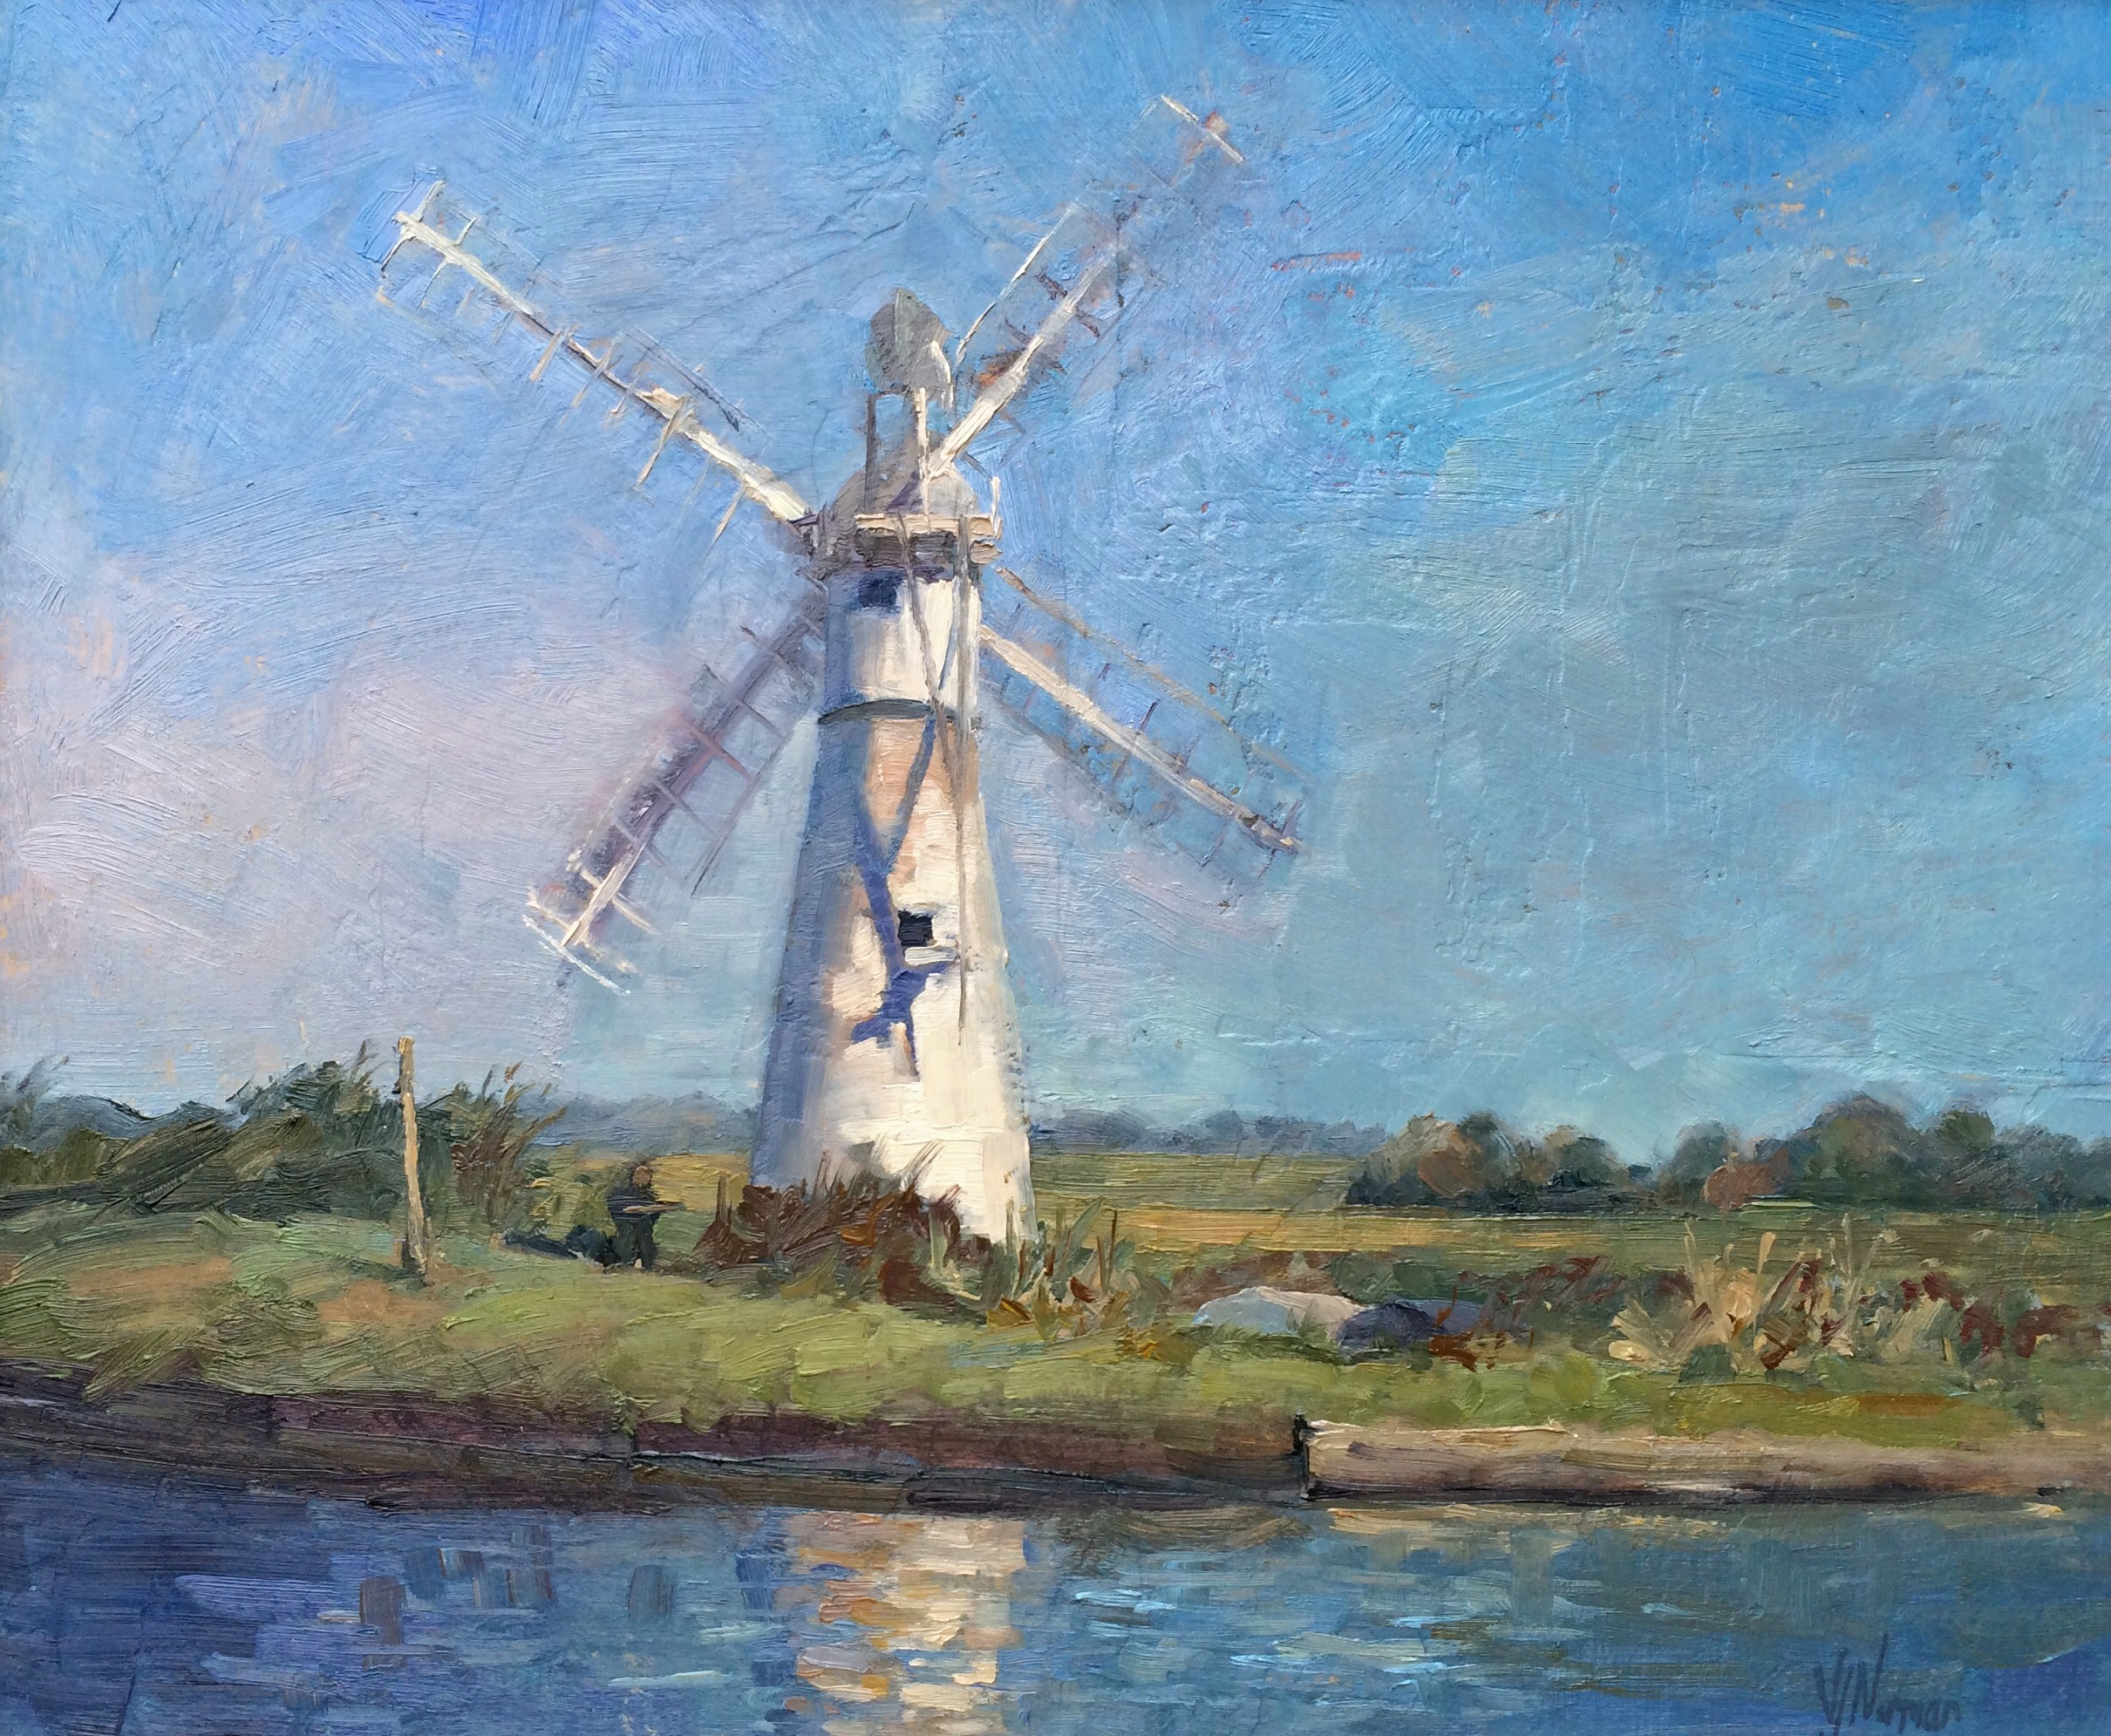 Thurne Mill. Use this course to develop your eye for design.